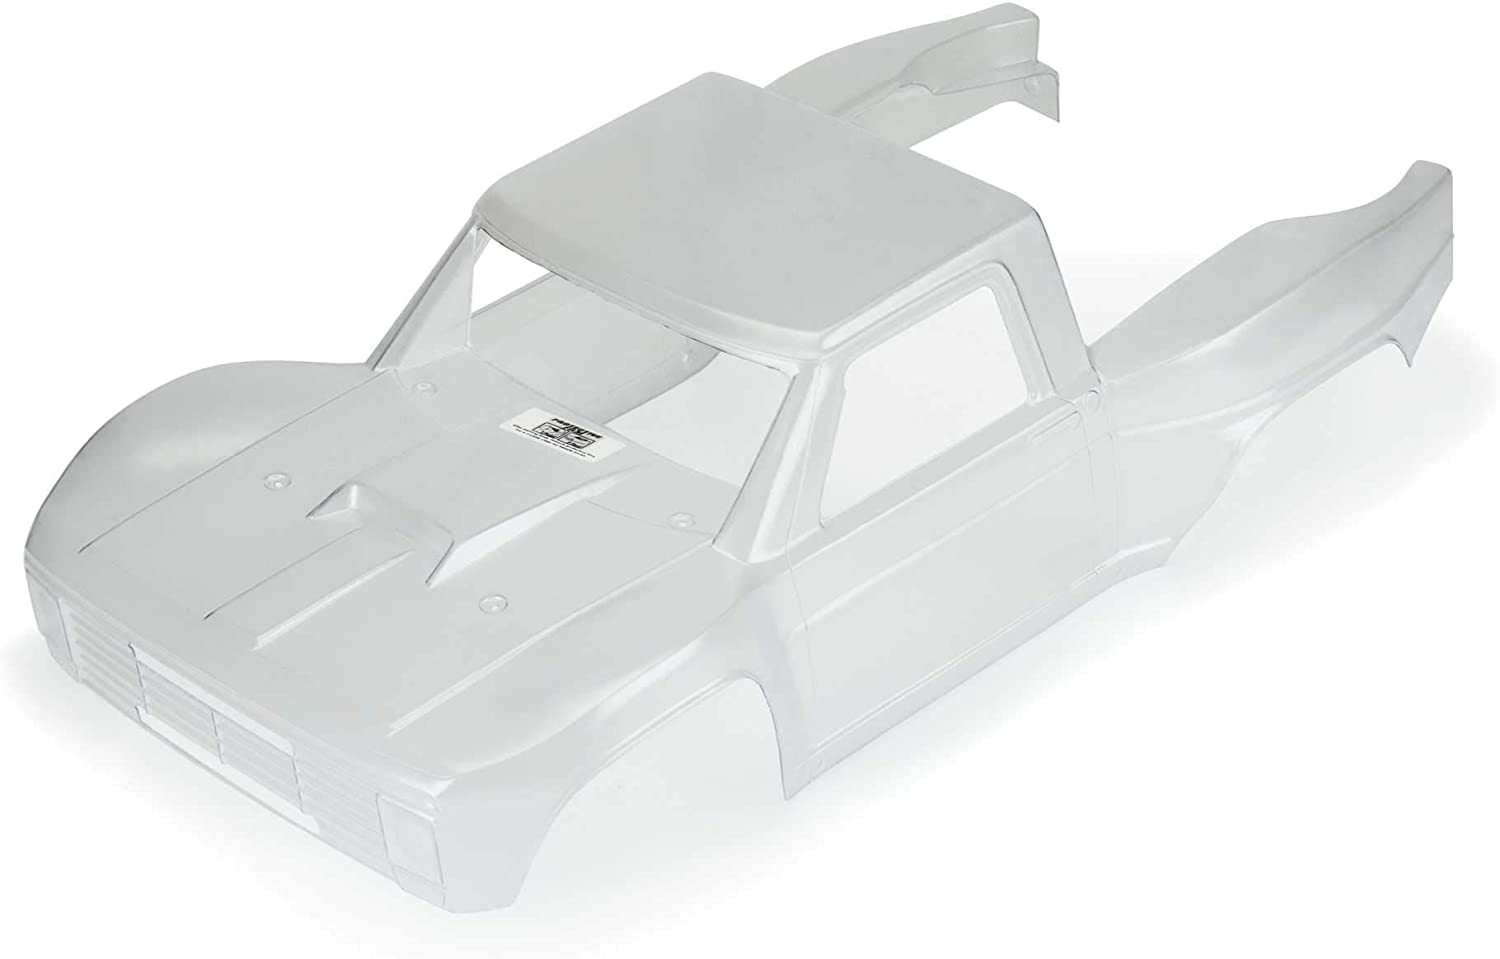 Pro-line Racing 1/7 Pre-Cut 1967 Ford F-100 Truck Clear Body: Unlimited Desert Racer, PRO354717